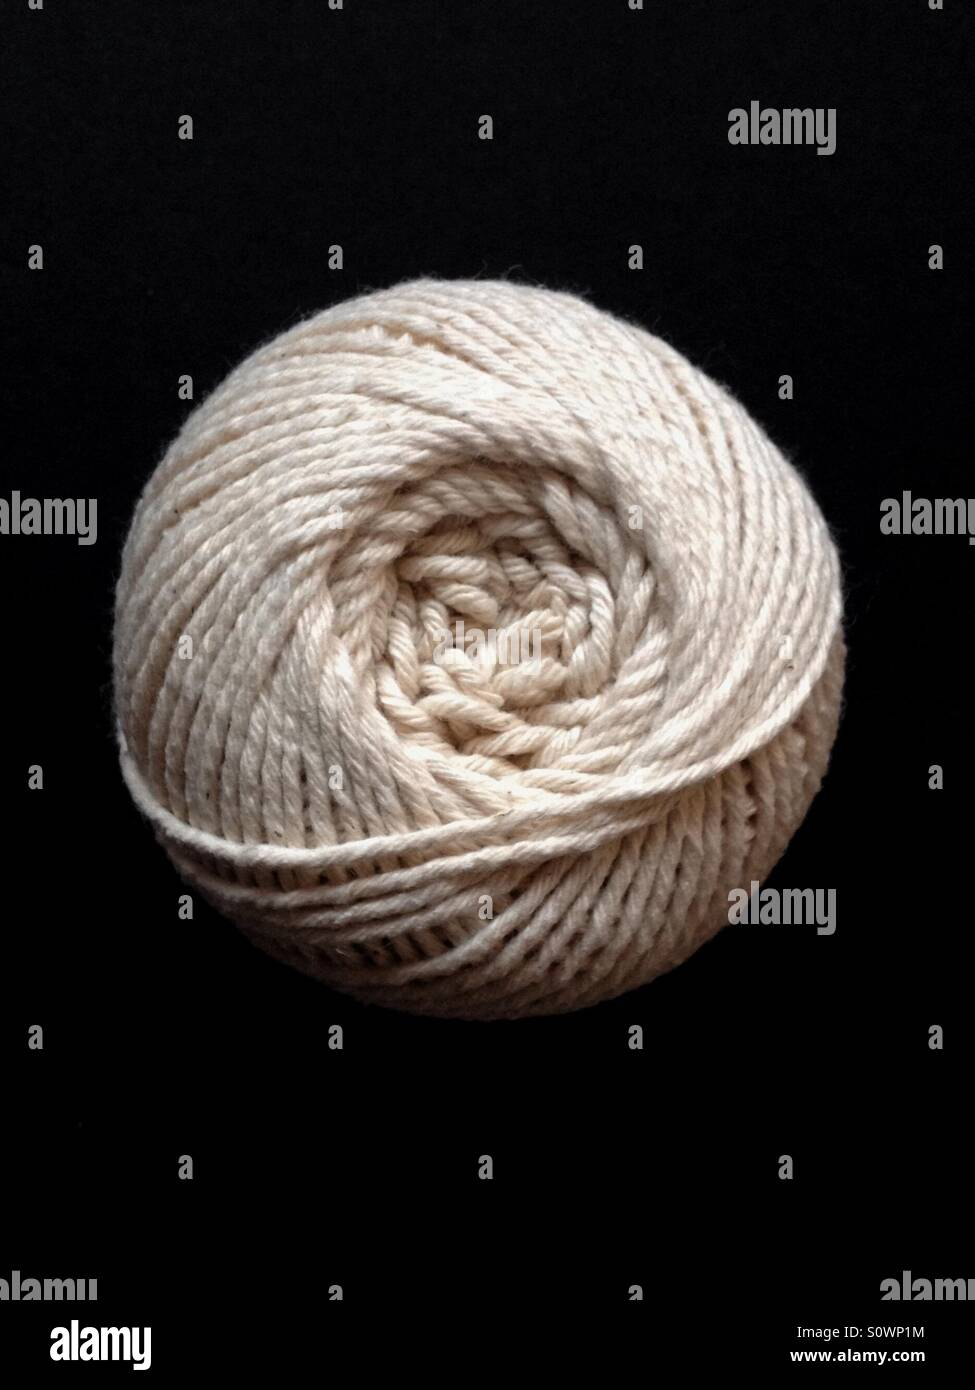 Ball of string on black background - Stock Image